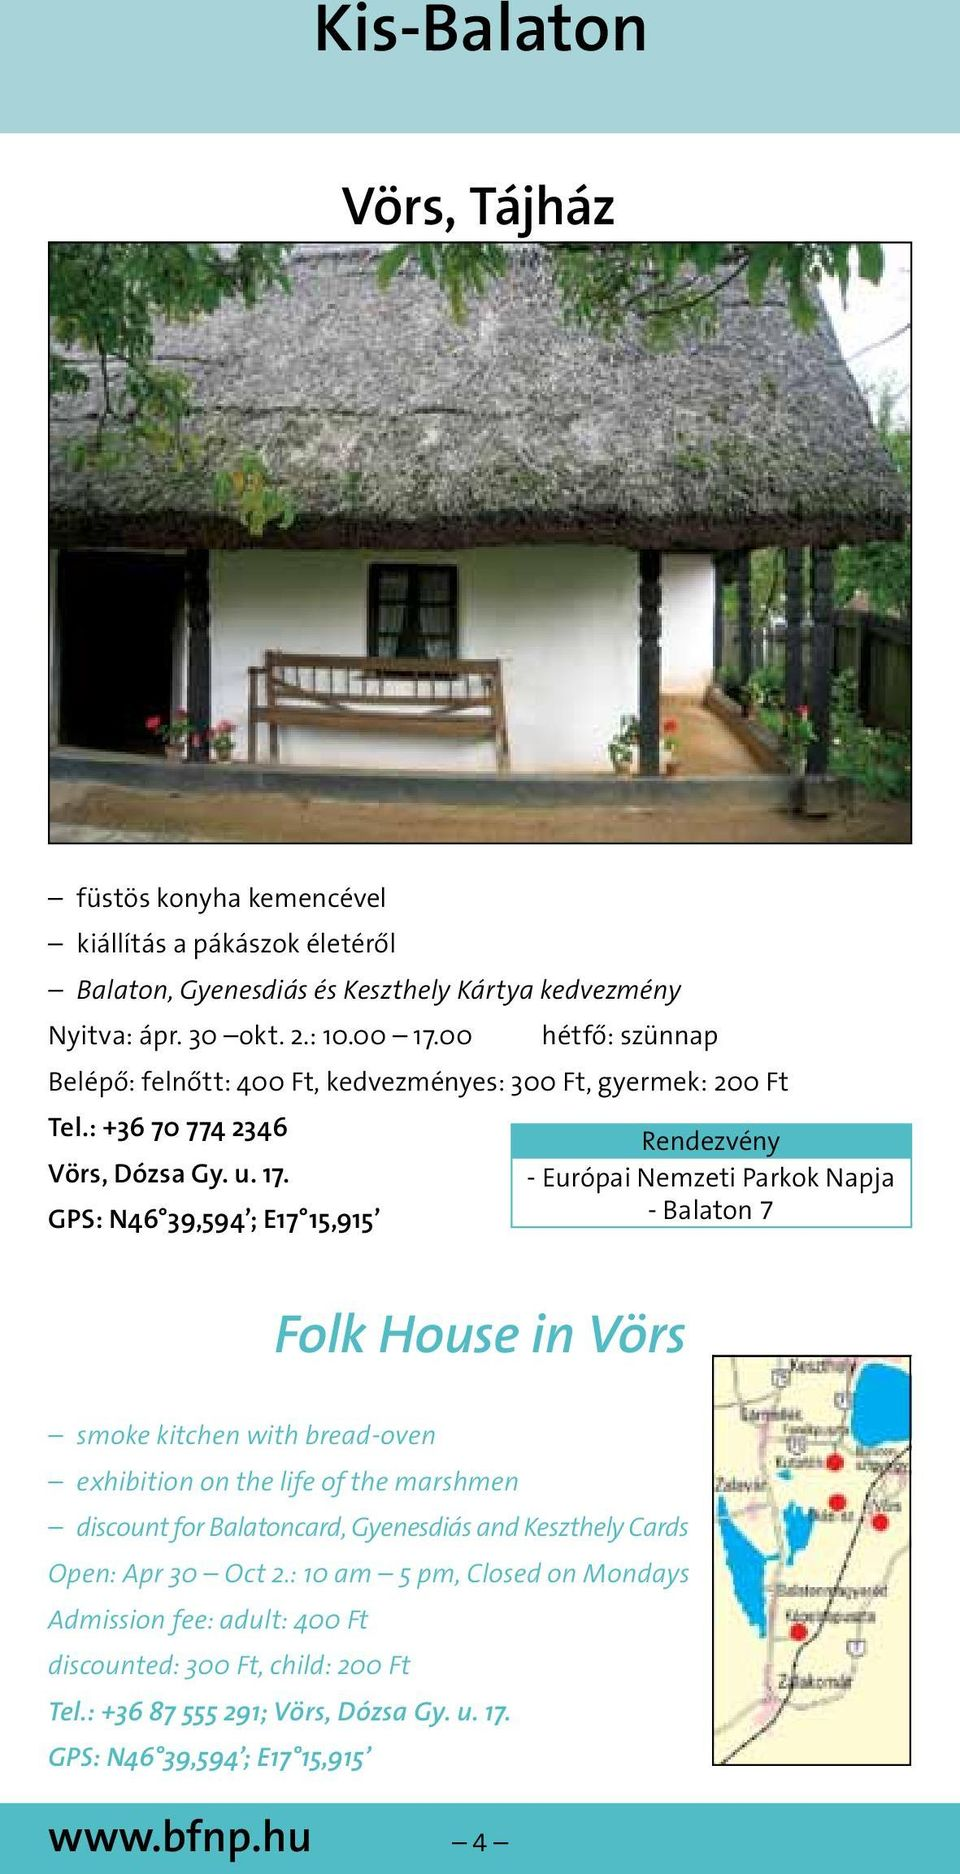 - Európai Nemzeti Parkok Napja GPS: N46 39,594 ; E17 15,915 - Balaton 7 Folk House in Vörs smoke kitchen with bread-oven exhibition on the life of the marshmen discount for